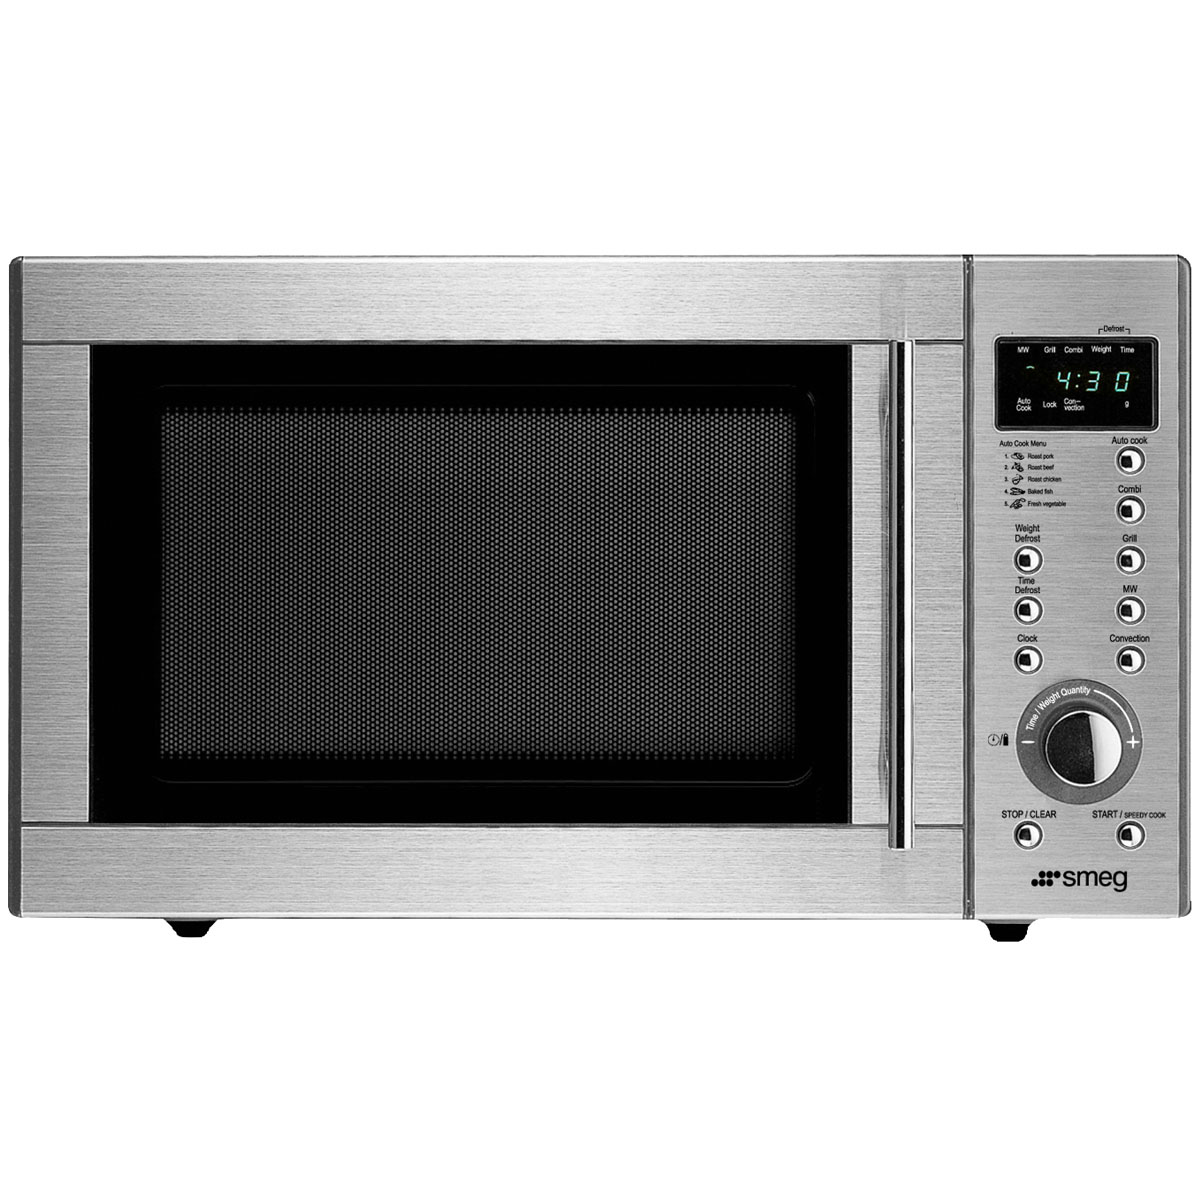 Smeg SA985-2CX1 950W Convection Microwave Oven